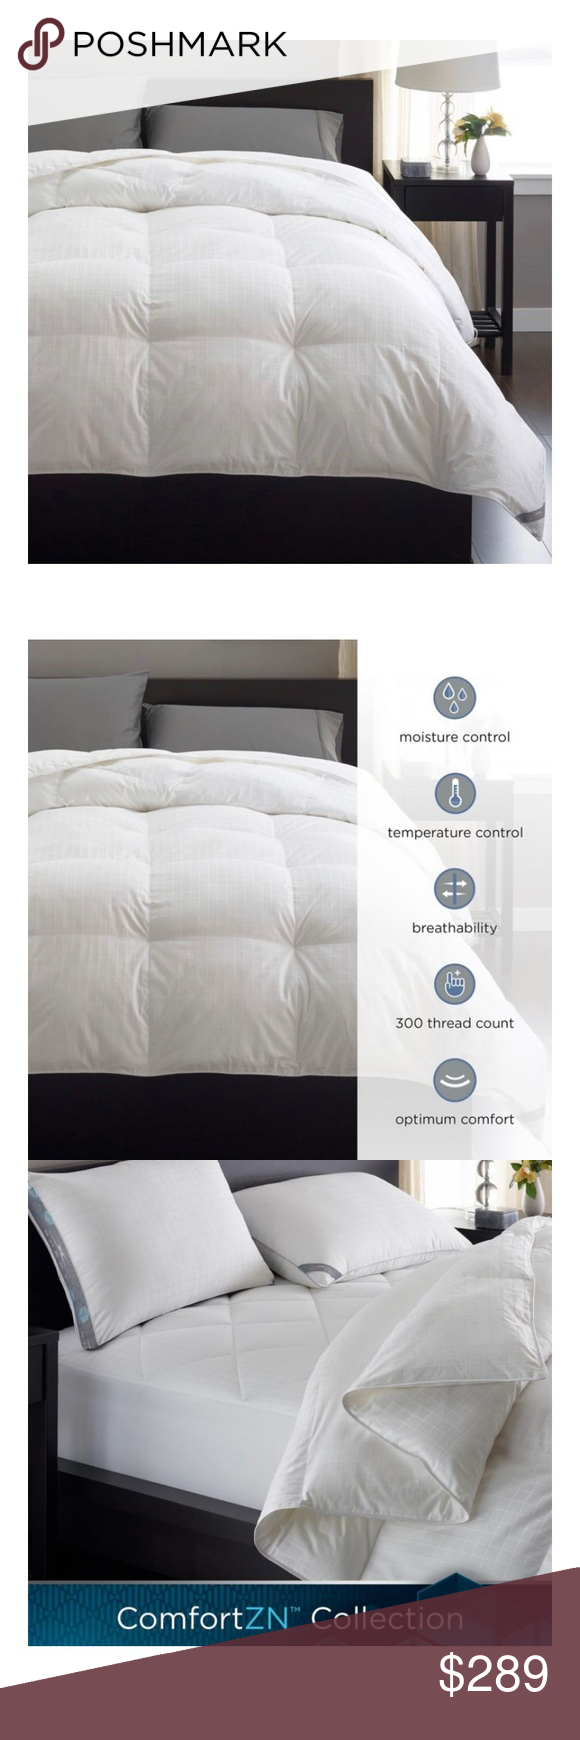 Sheex Comfortzn Comforter King Size In White Sheex Comfortzn Comforter King Size In White Down Alternative 37 5 Technology King Comforter Comforters King Size